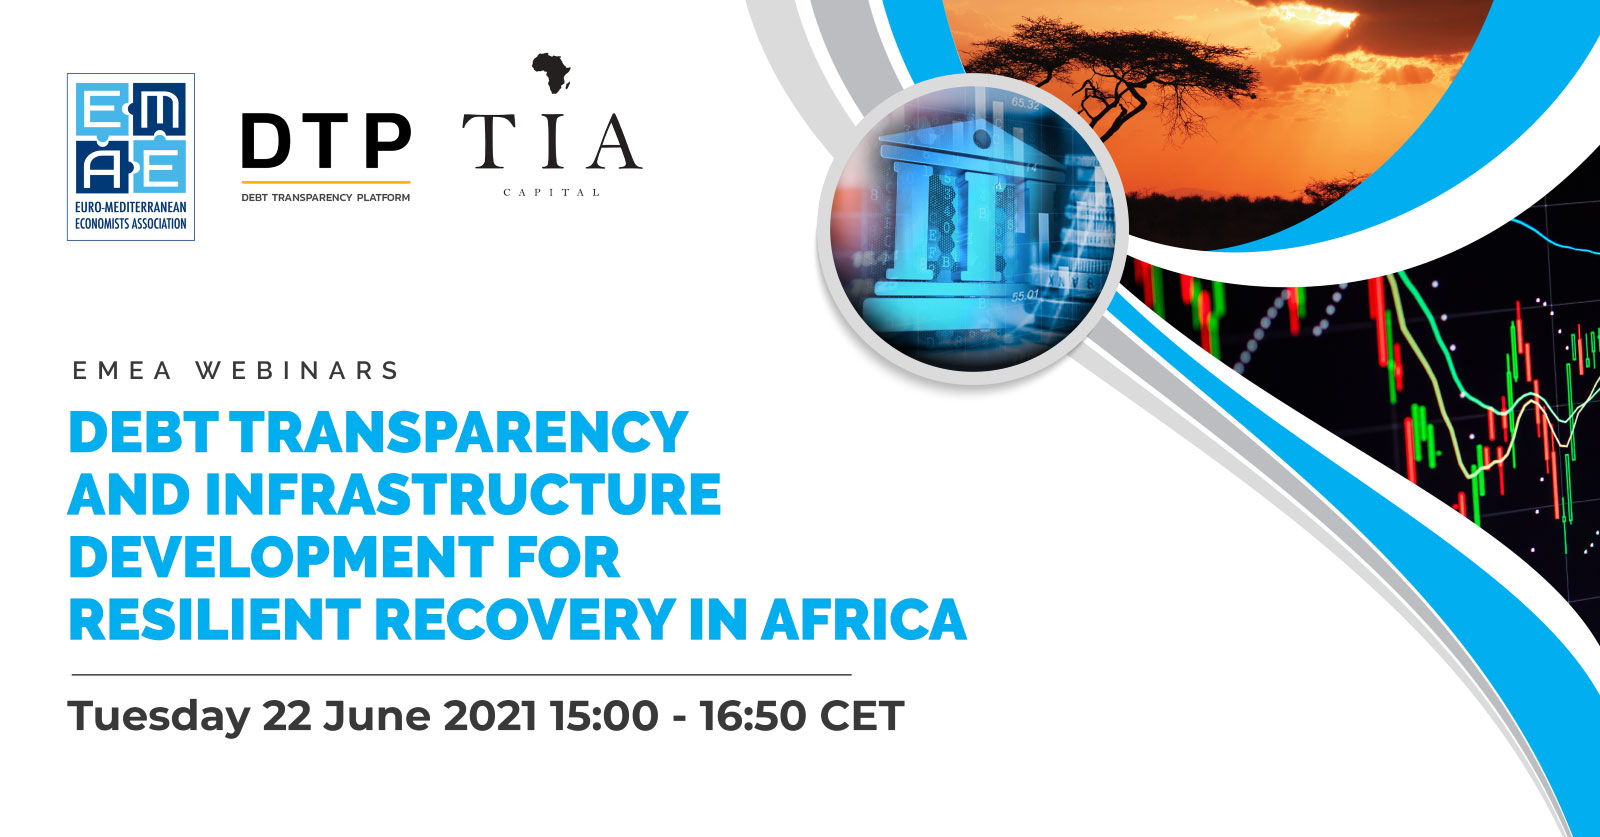 """EMEA announces the webinar """"Debt Transparency and Infrastructure Development for Resilient Recovery in Africa?"""" scheduled on Tuesday 22 June 2021, 15:00 CET"""